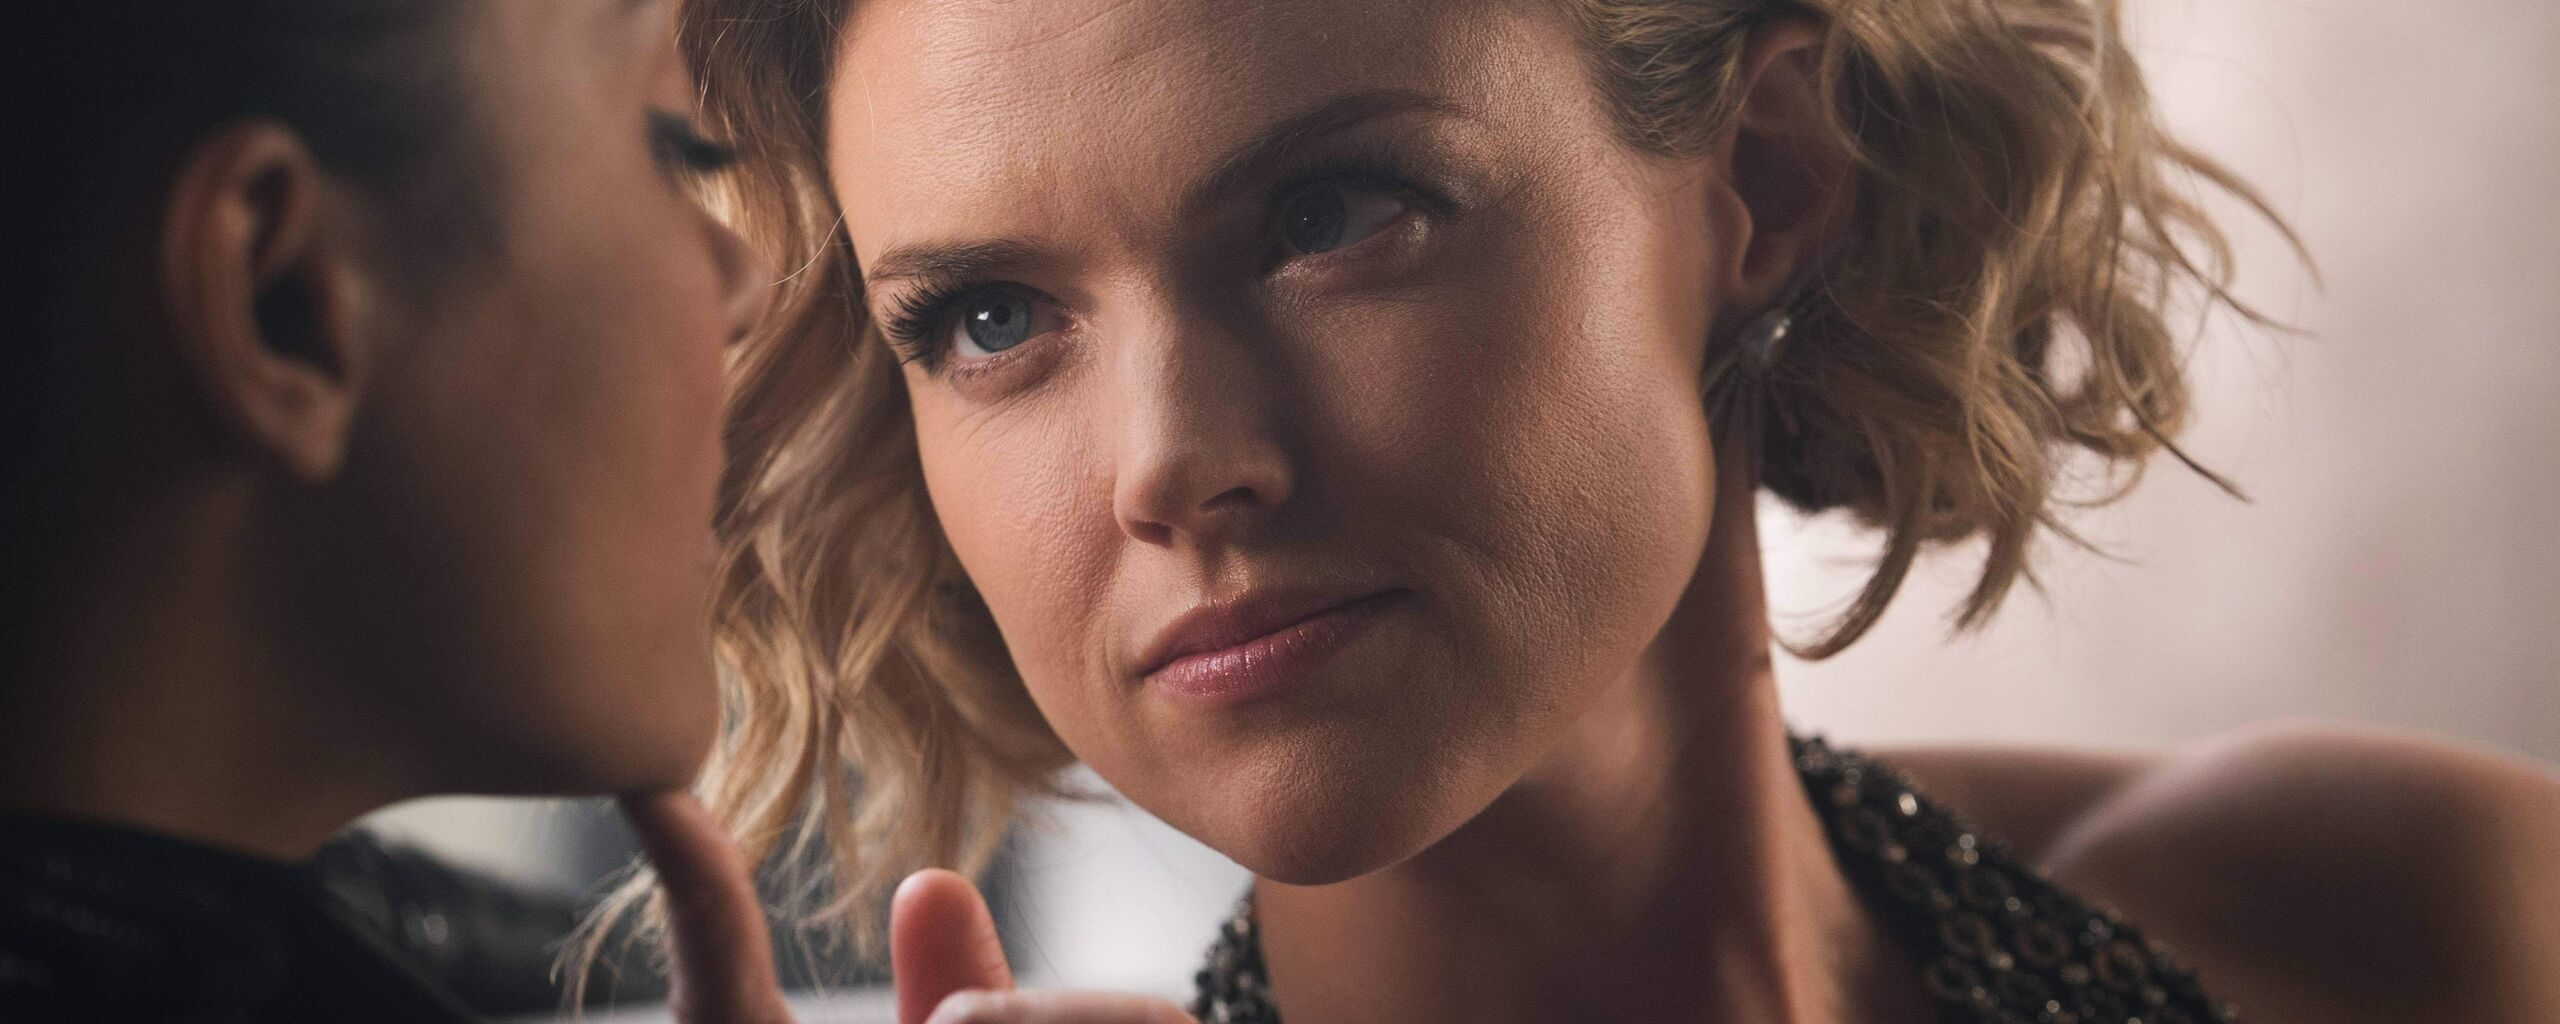 erin-richards-in-gotham-5k-dr.jpg